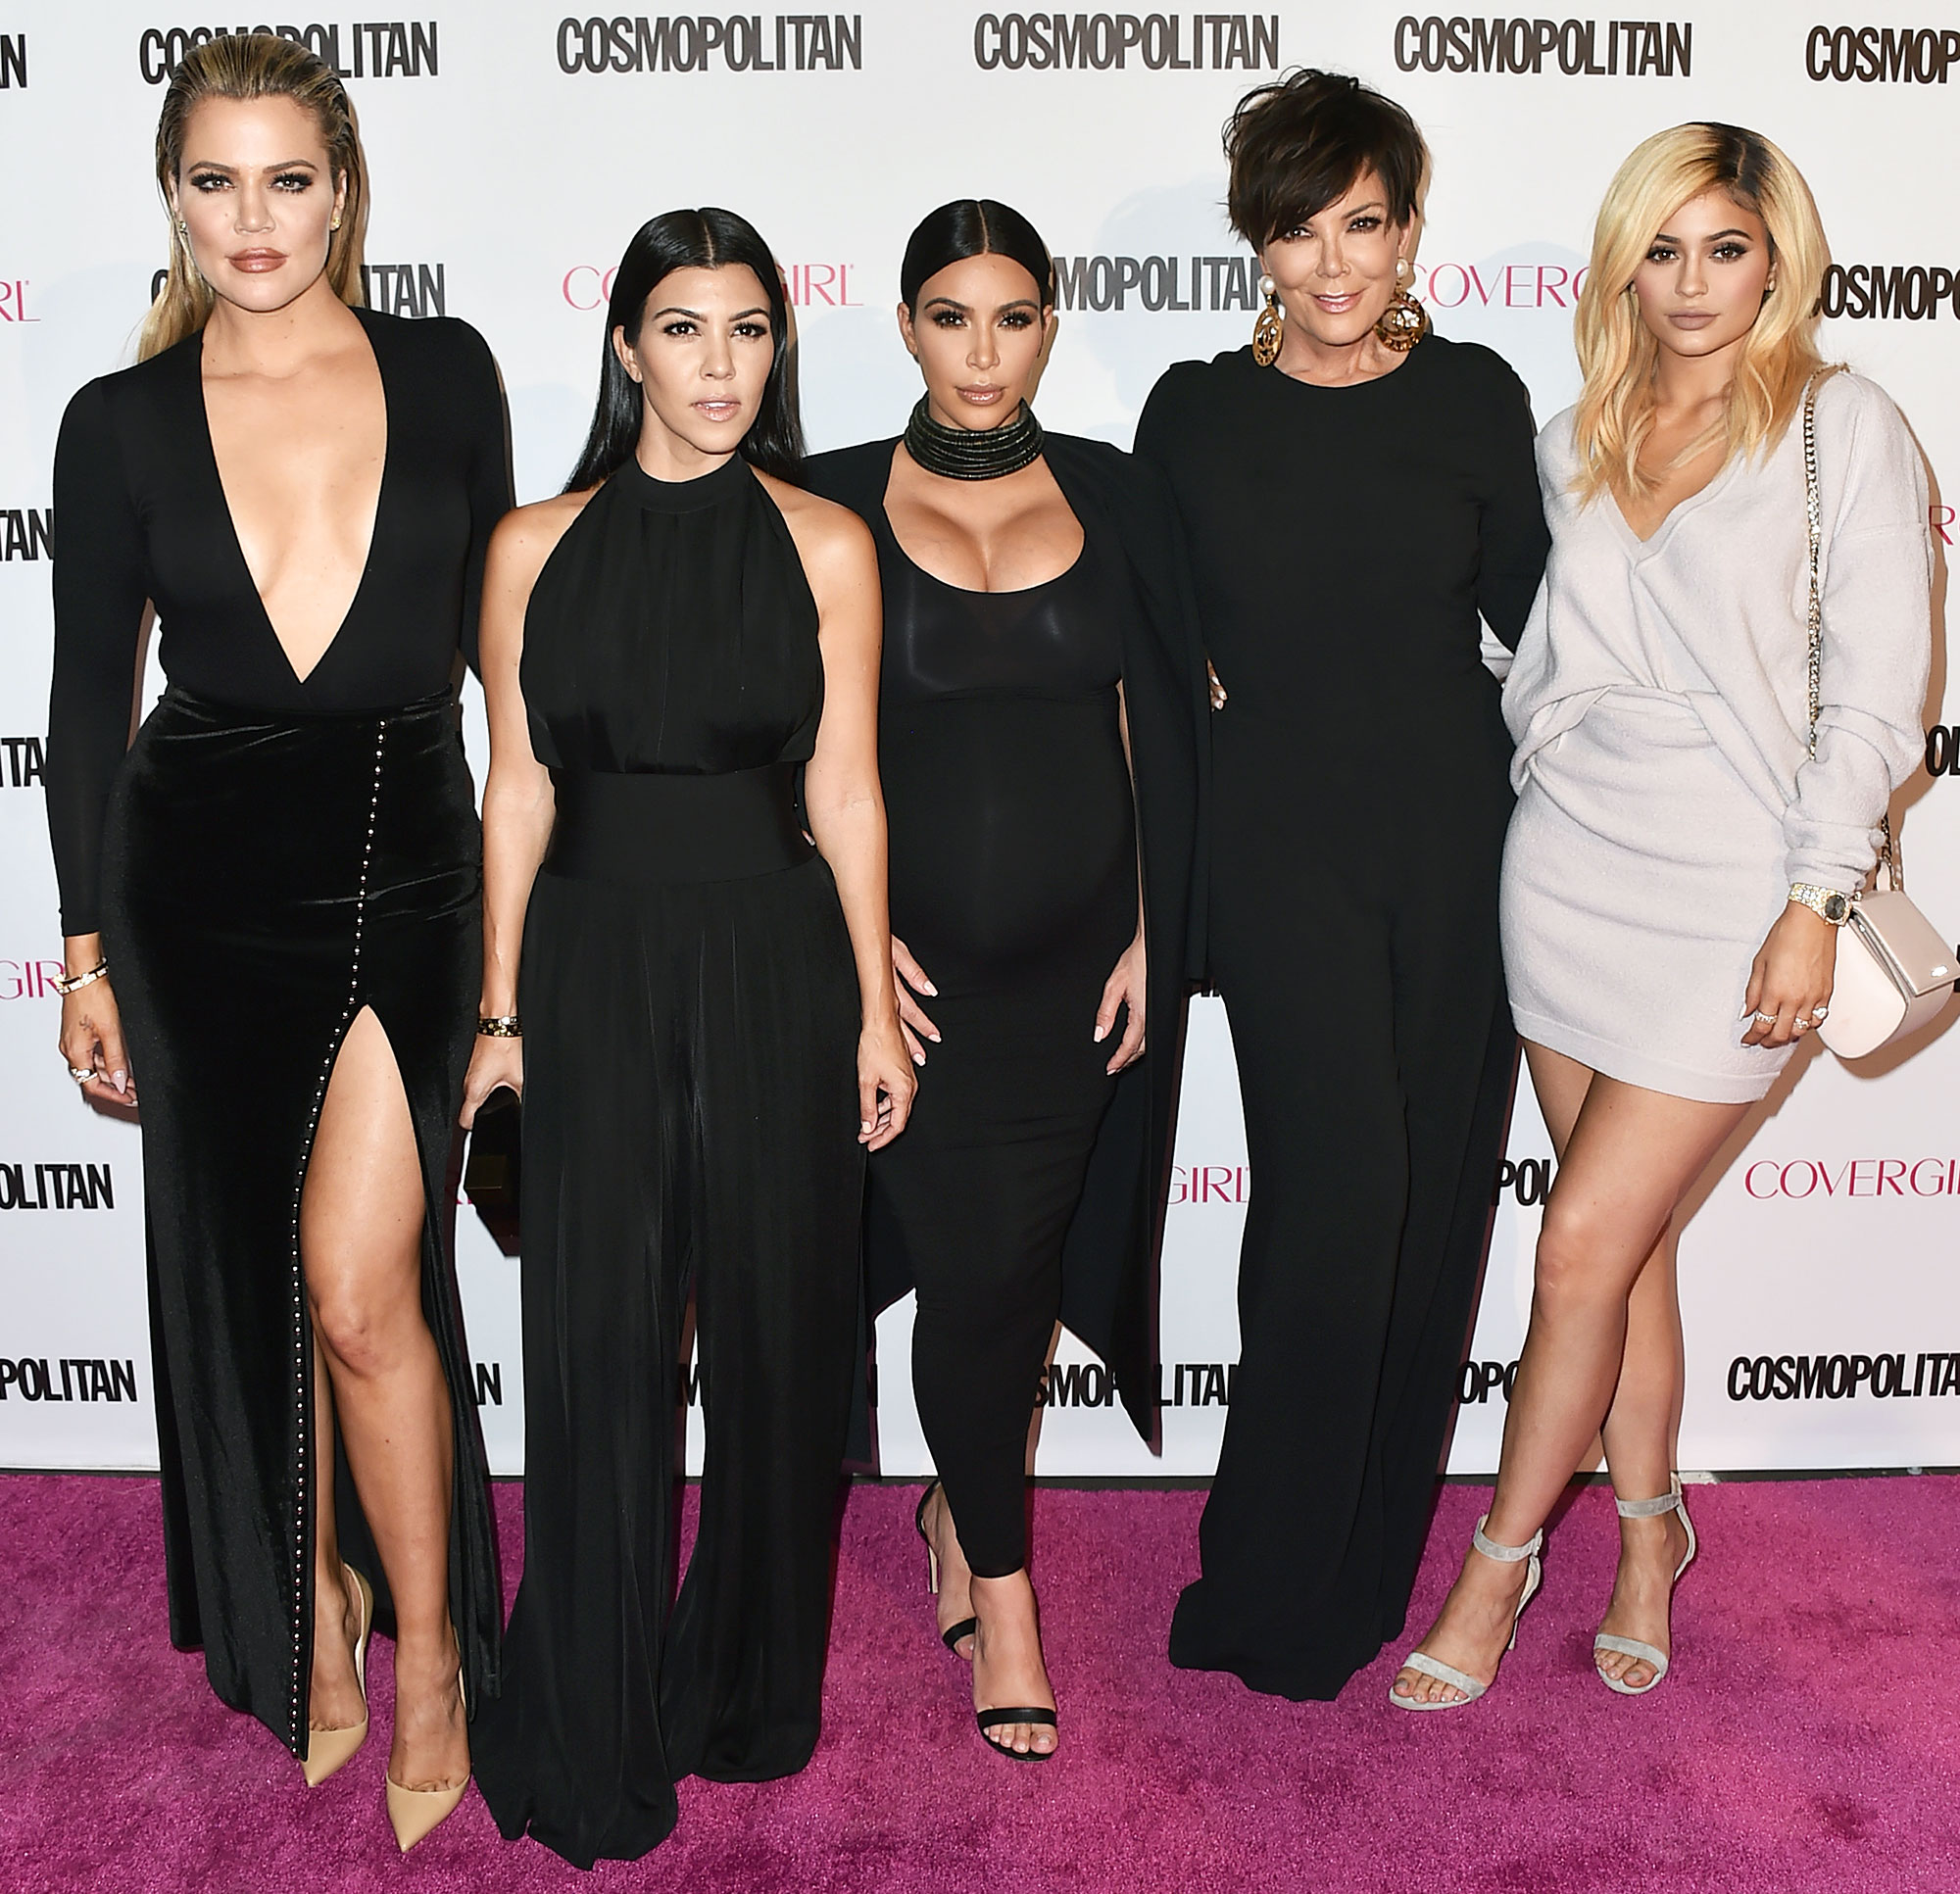 Khloe Kardashian Kourtney Kardashian Kim Kardashian West Kris Jenner and Kylie Jenner Caitlyn Jenner Reveals She Apologized to Her Kids After Fans Slammed Them Over Im a Celebrity Snub